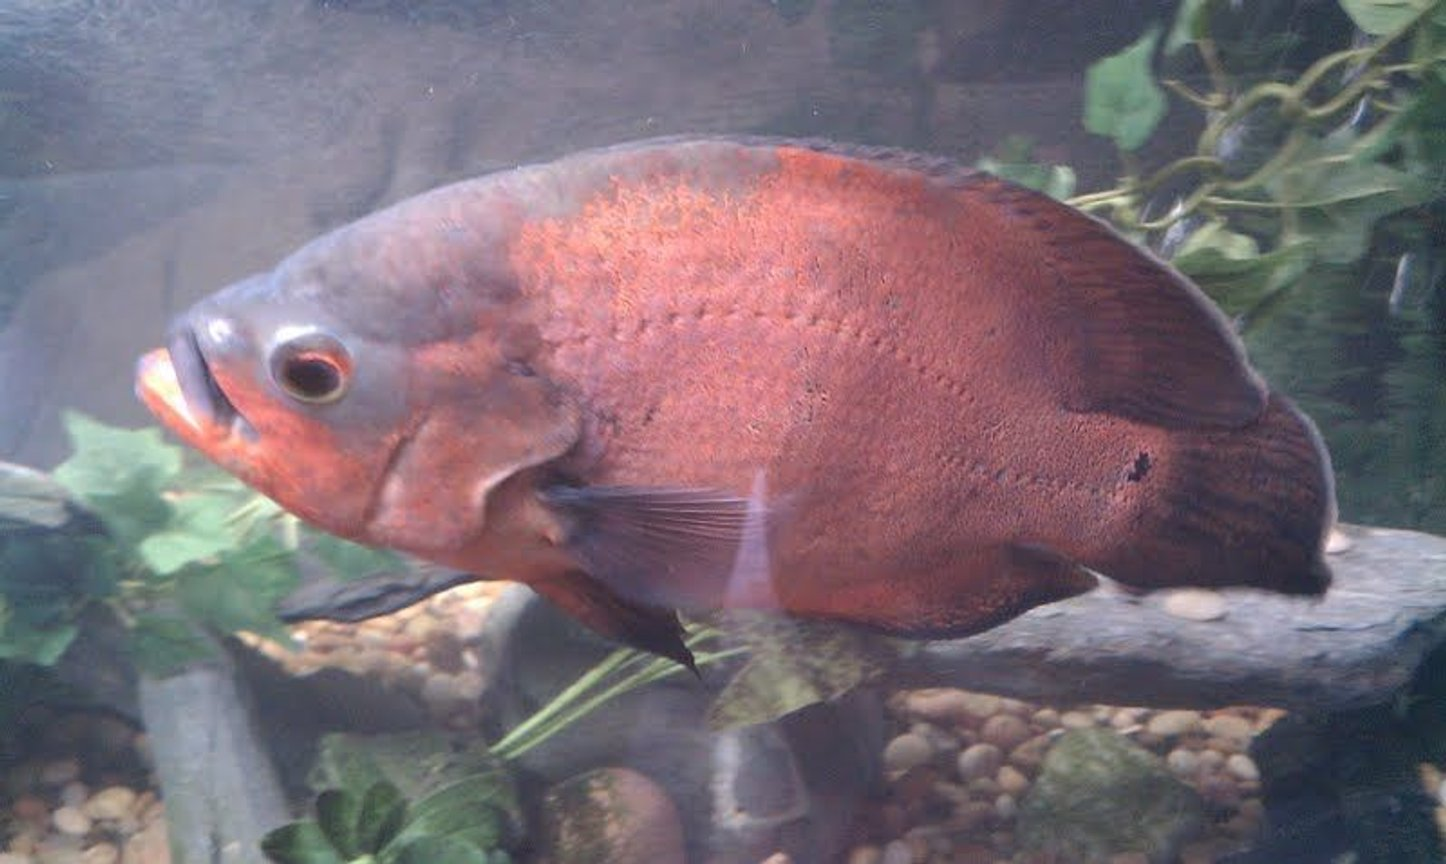 freshwater fish - astronotus ocellatus - red oscar stocking in 125 gallons tank - My old buddy... Red Oscar 13 inches long, about 8 years old